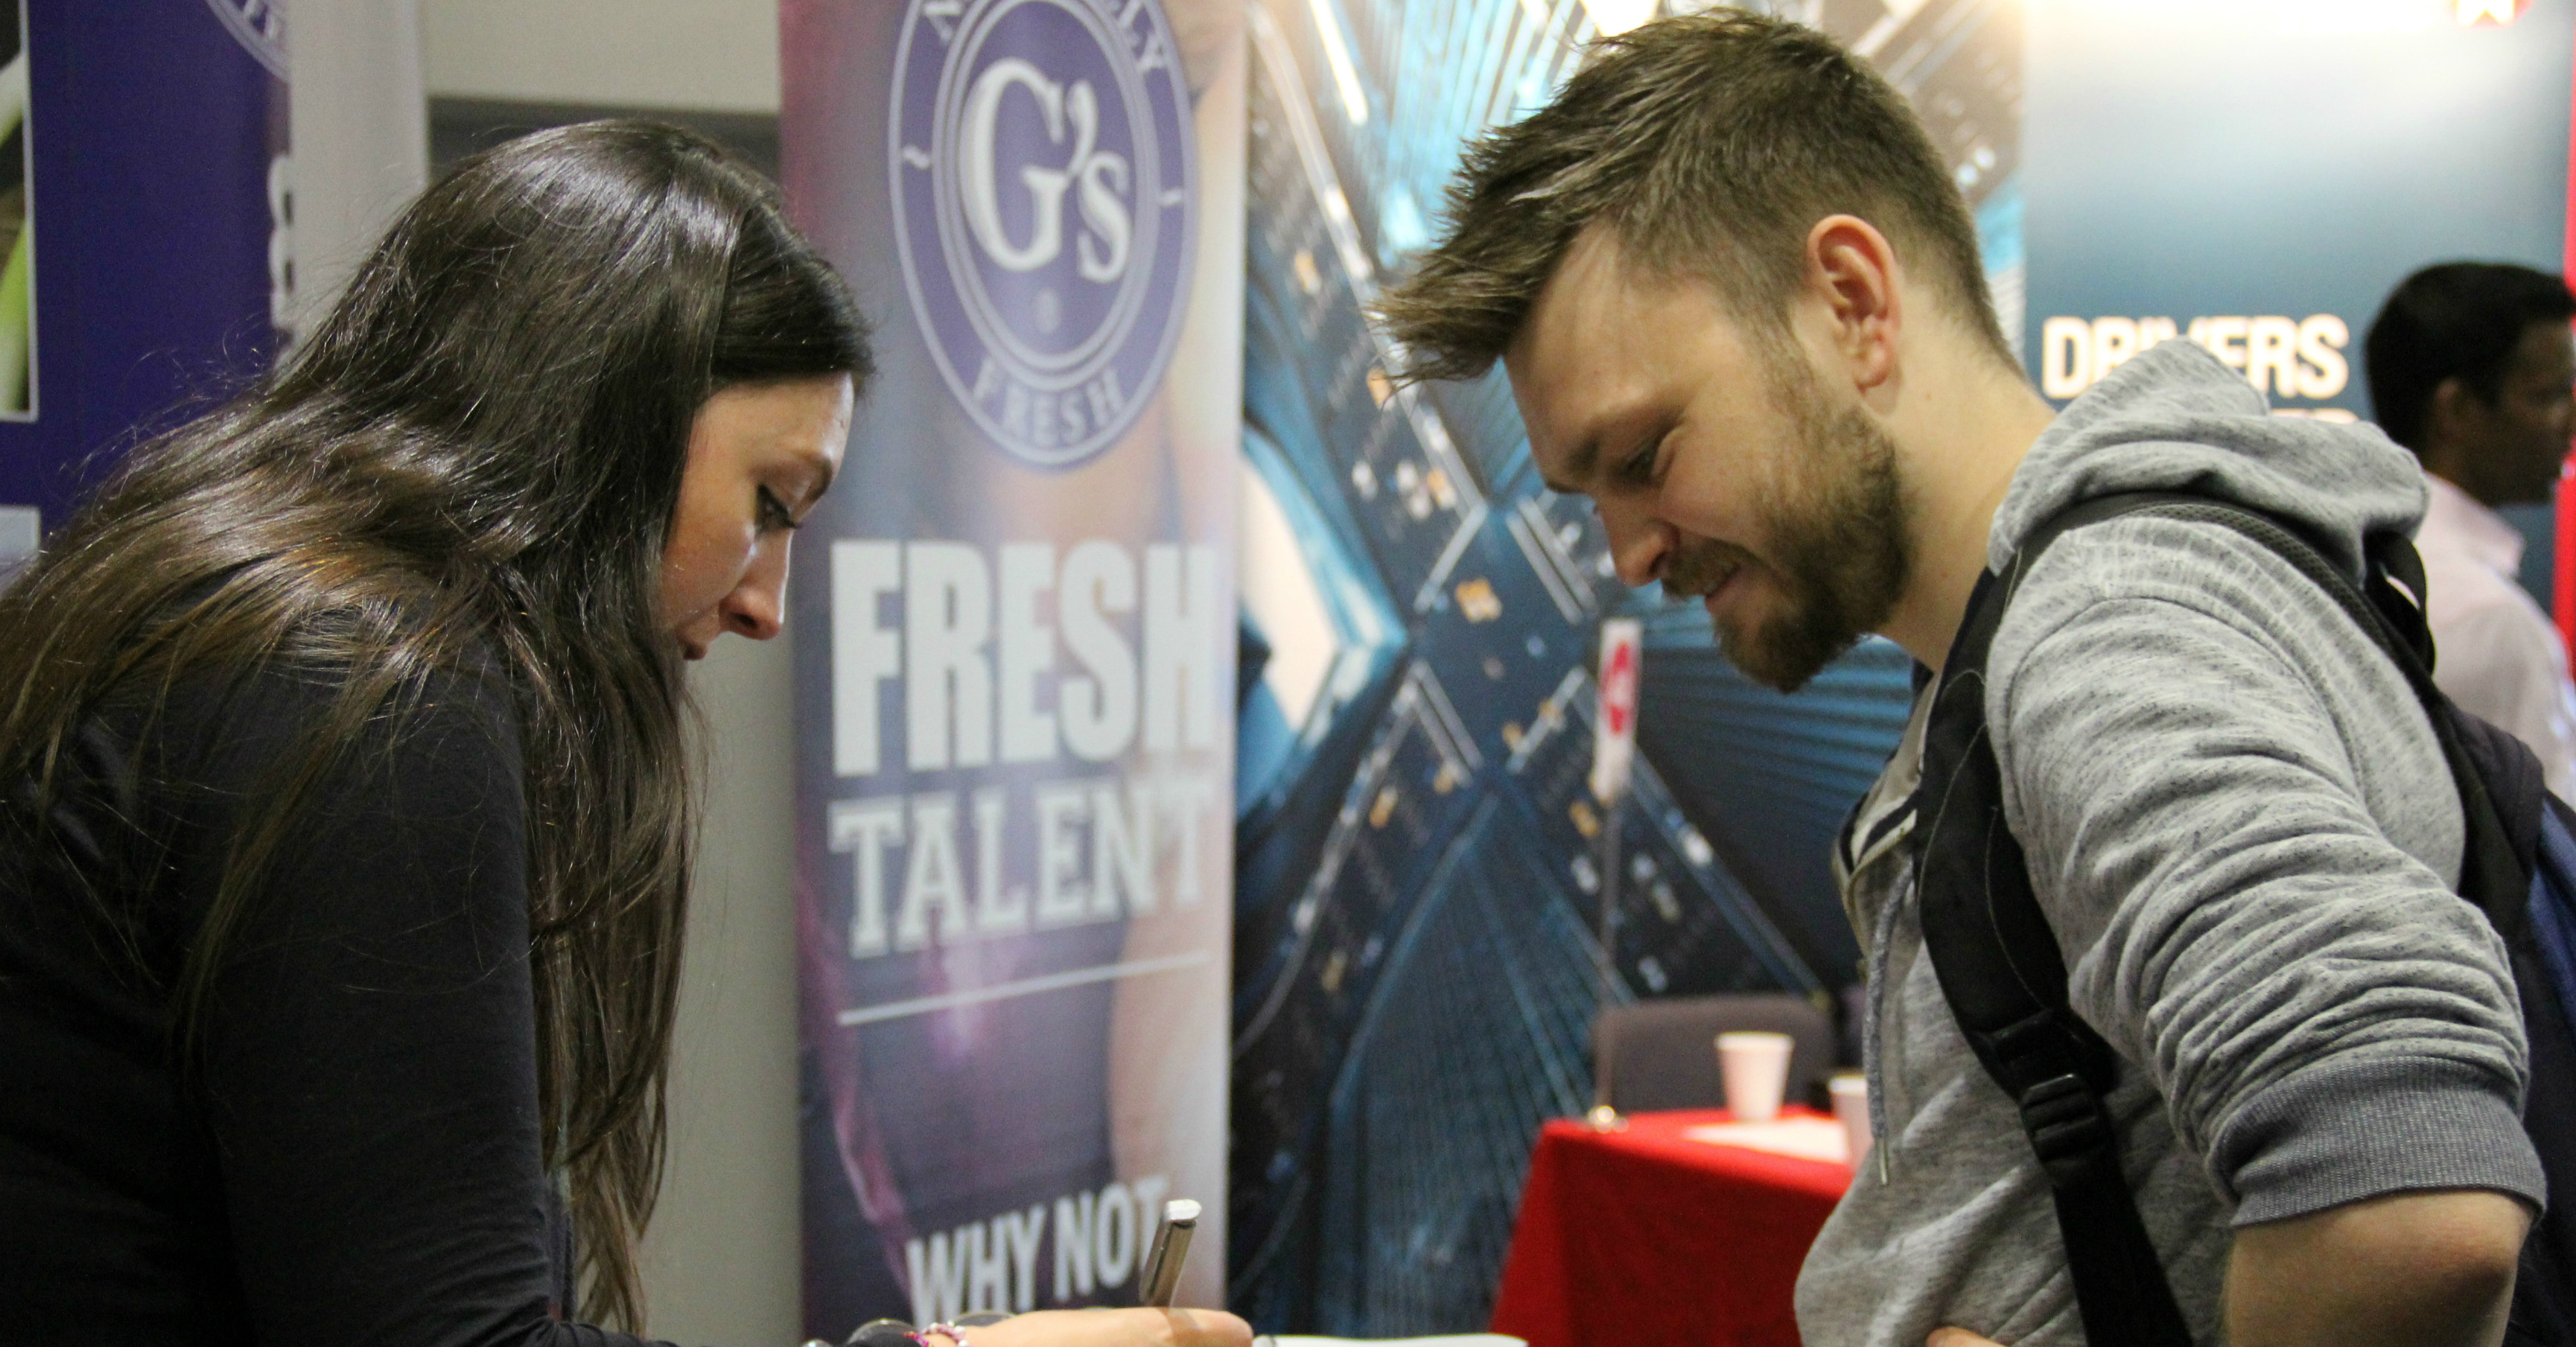 Student talking to employer at fair